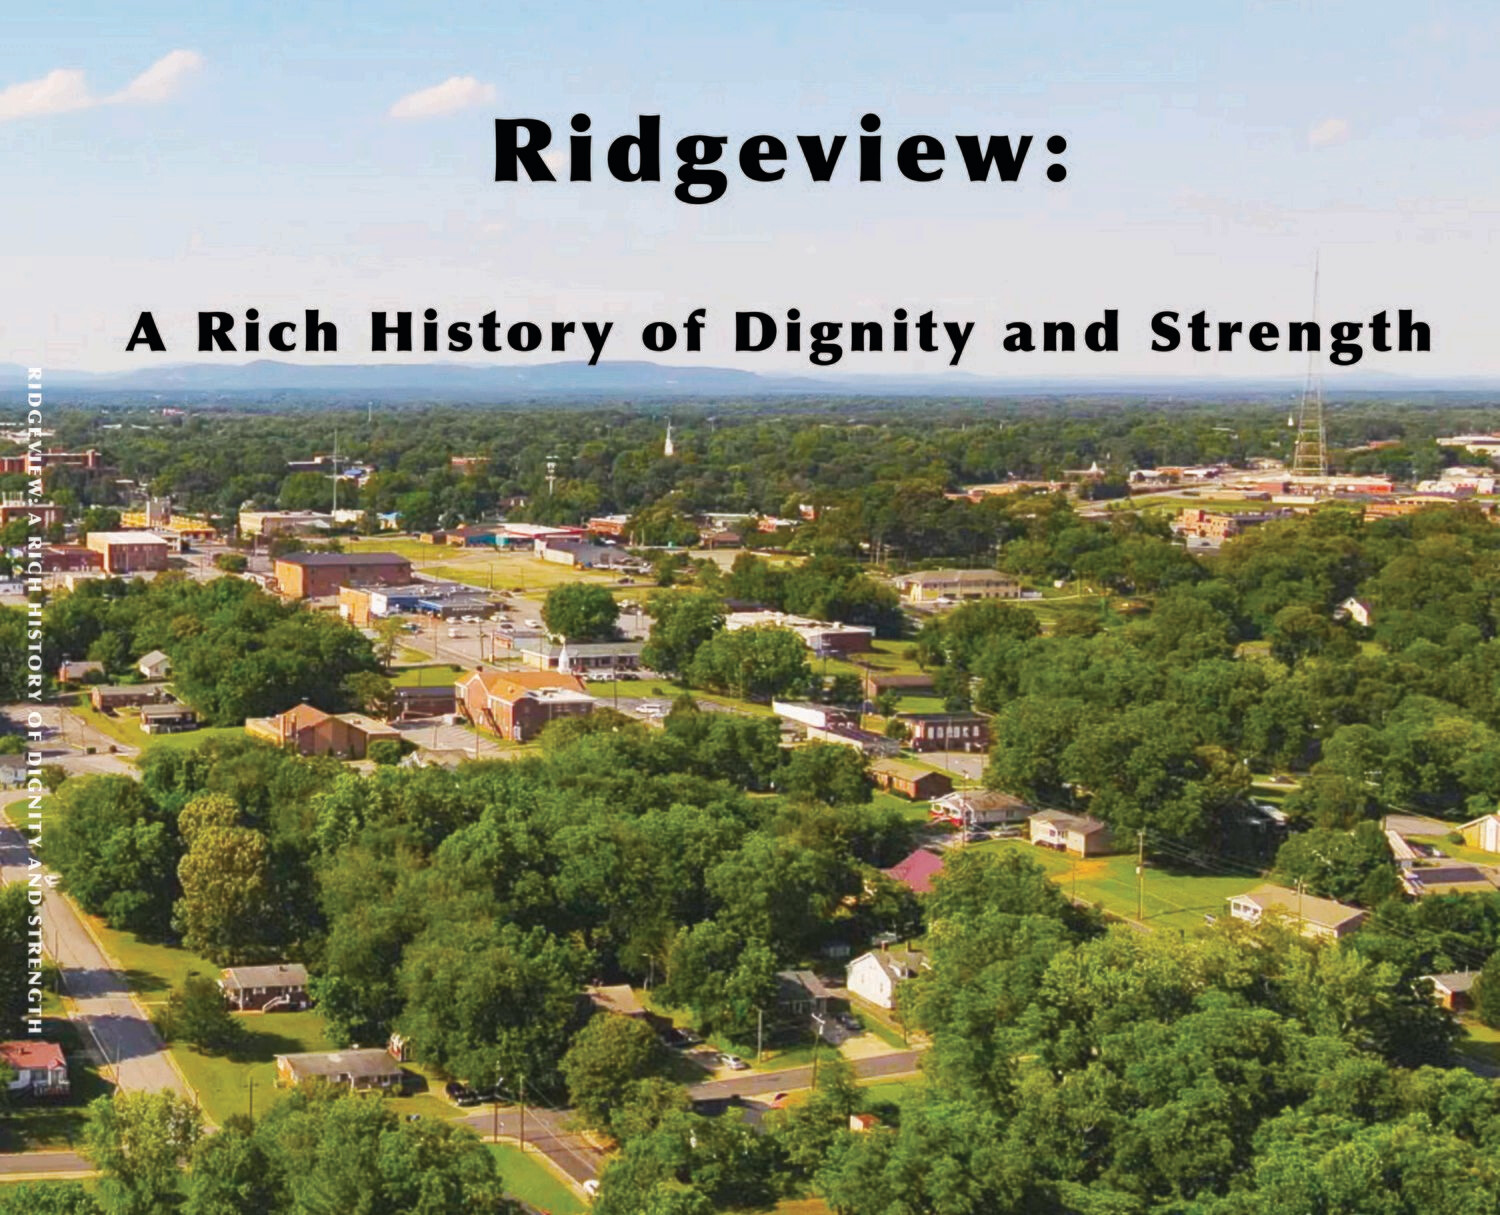 Ridgeview: A Rich History of Dignity and Strength